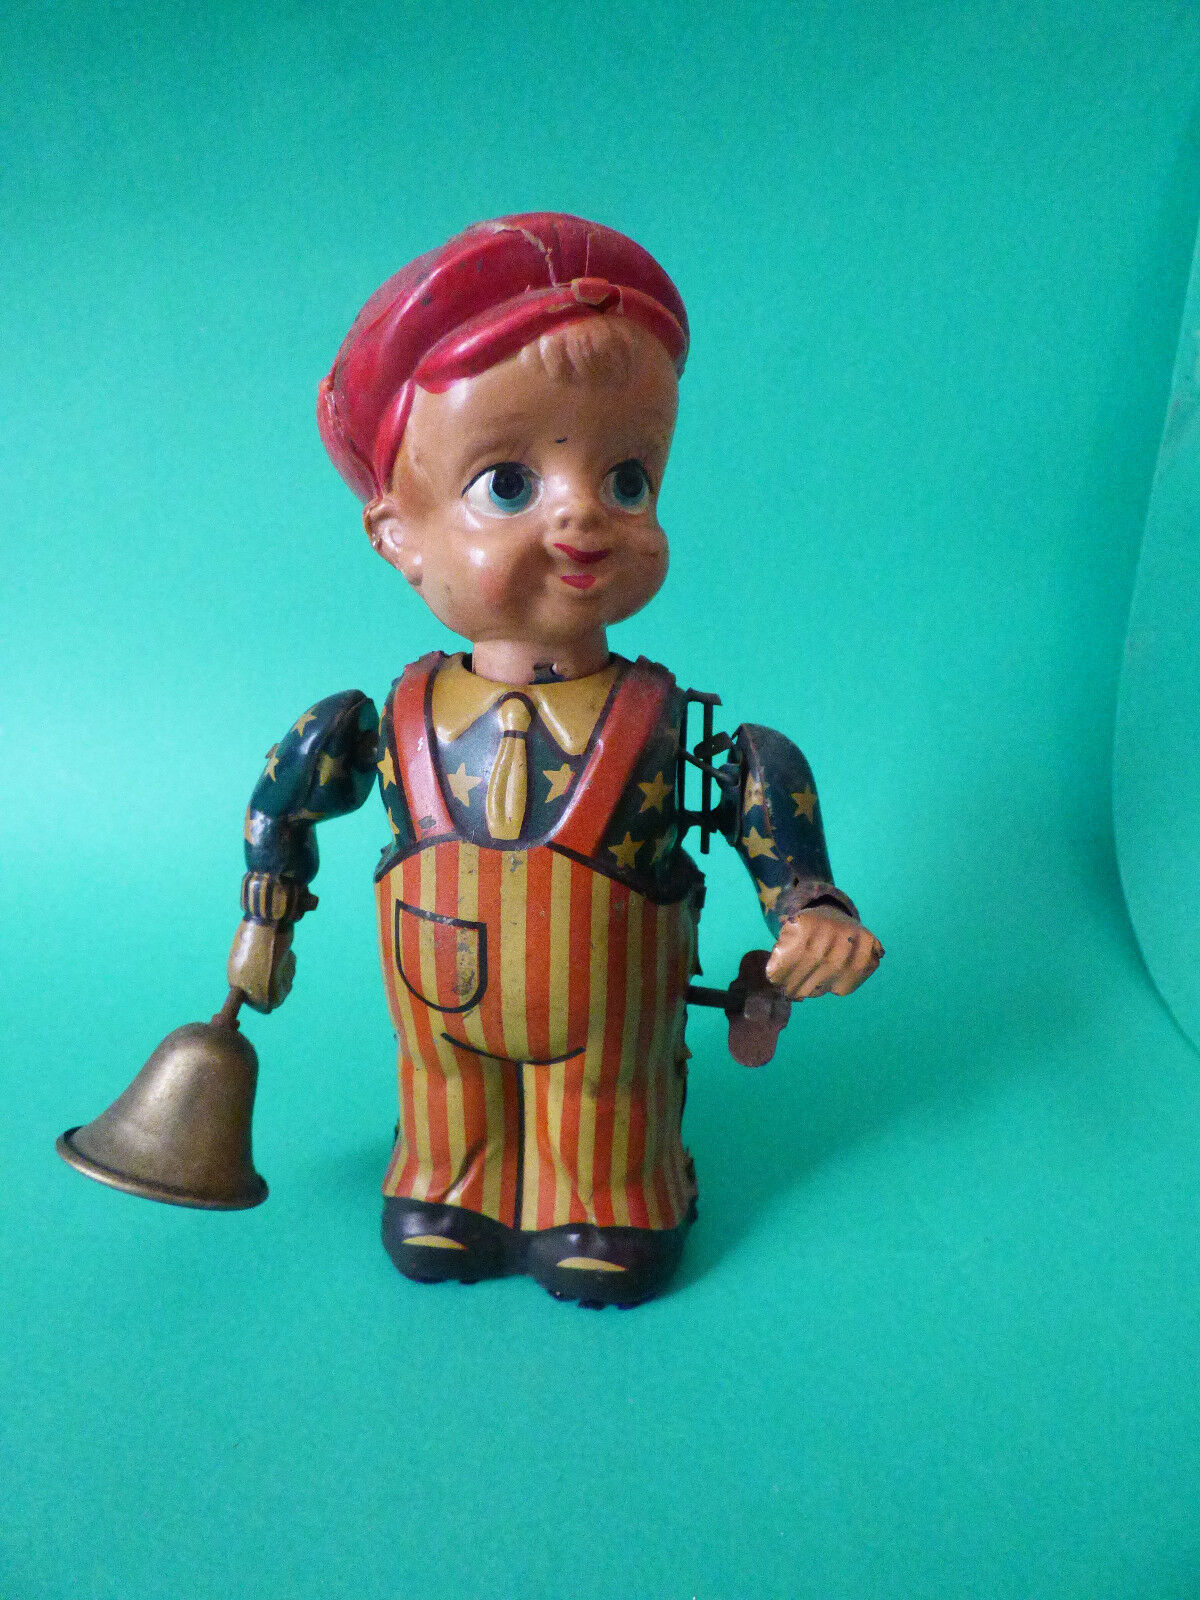 VINTAGE Nikko Toy NEWS BOY 1950s Tin Toy ULTRA RARE